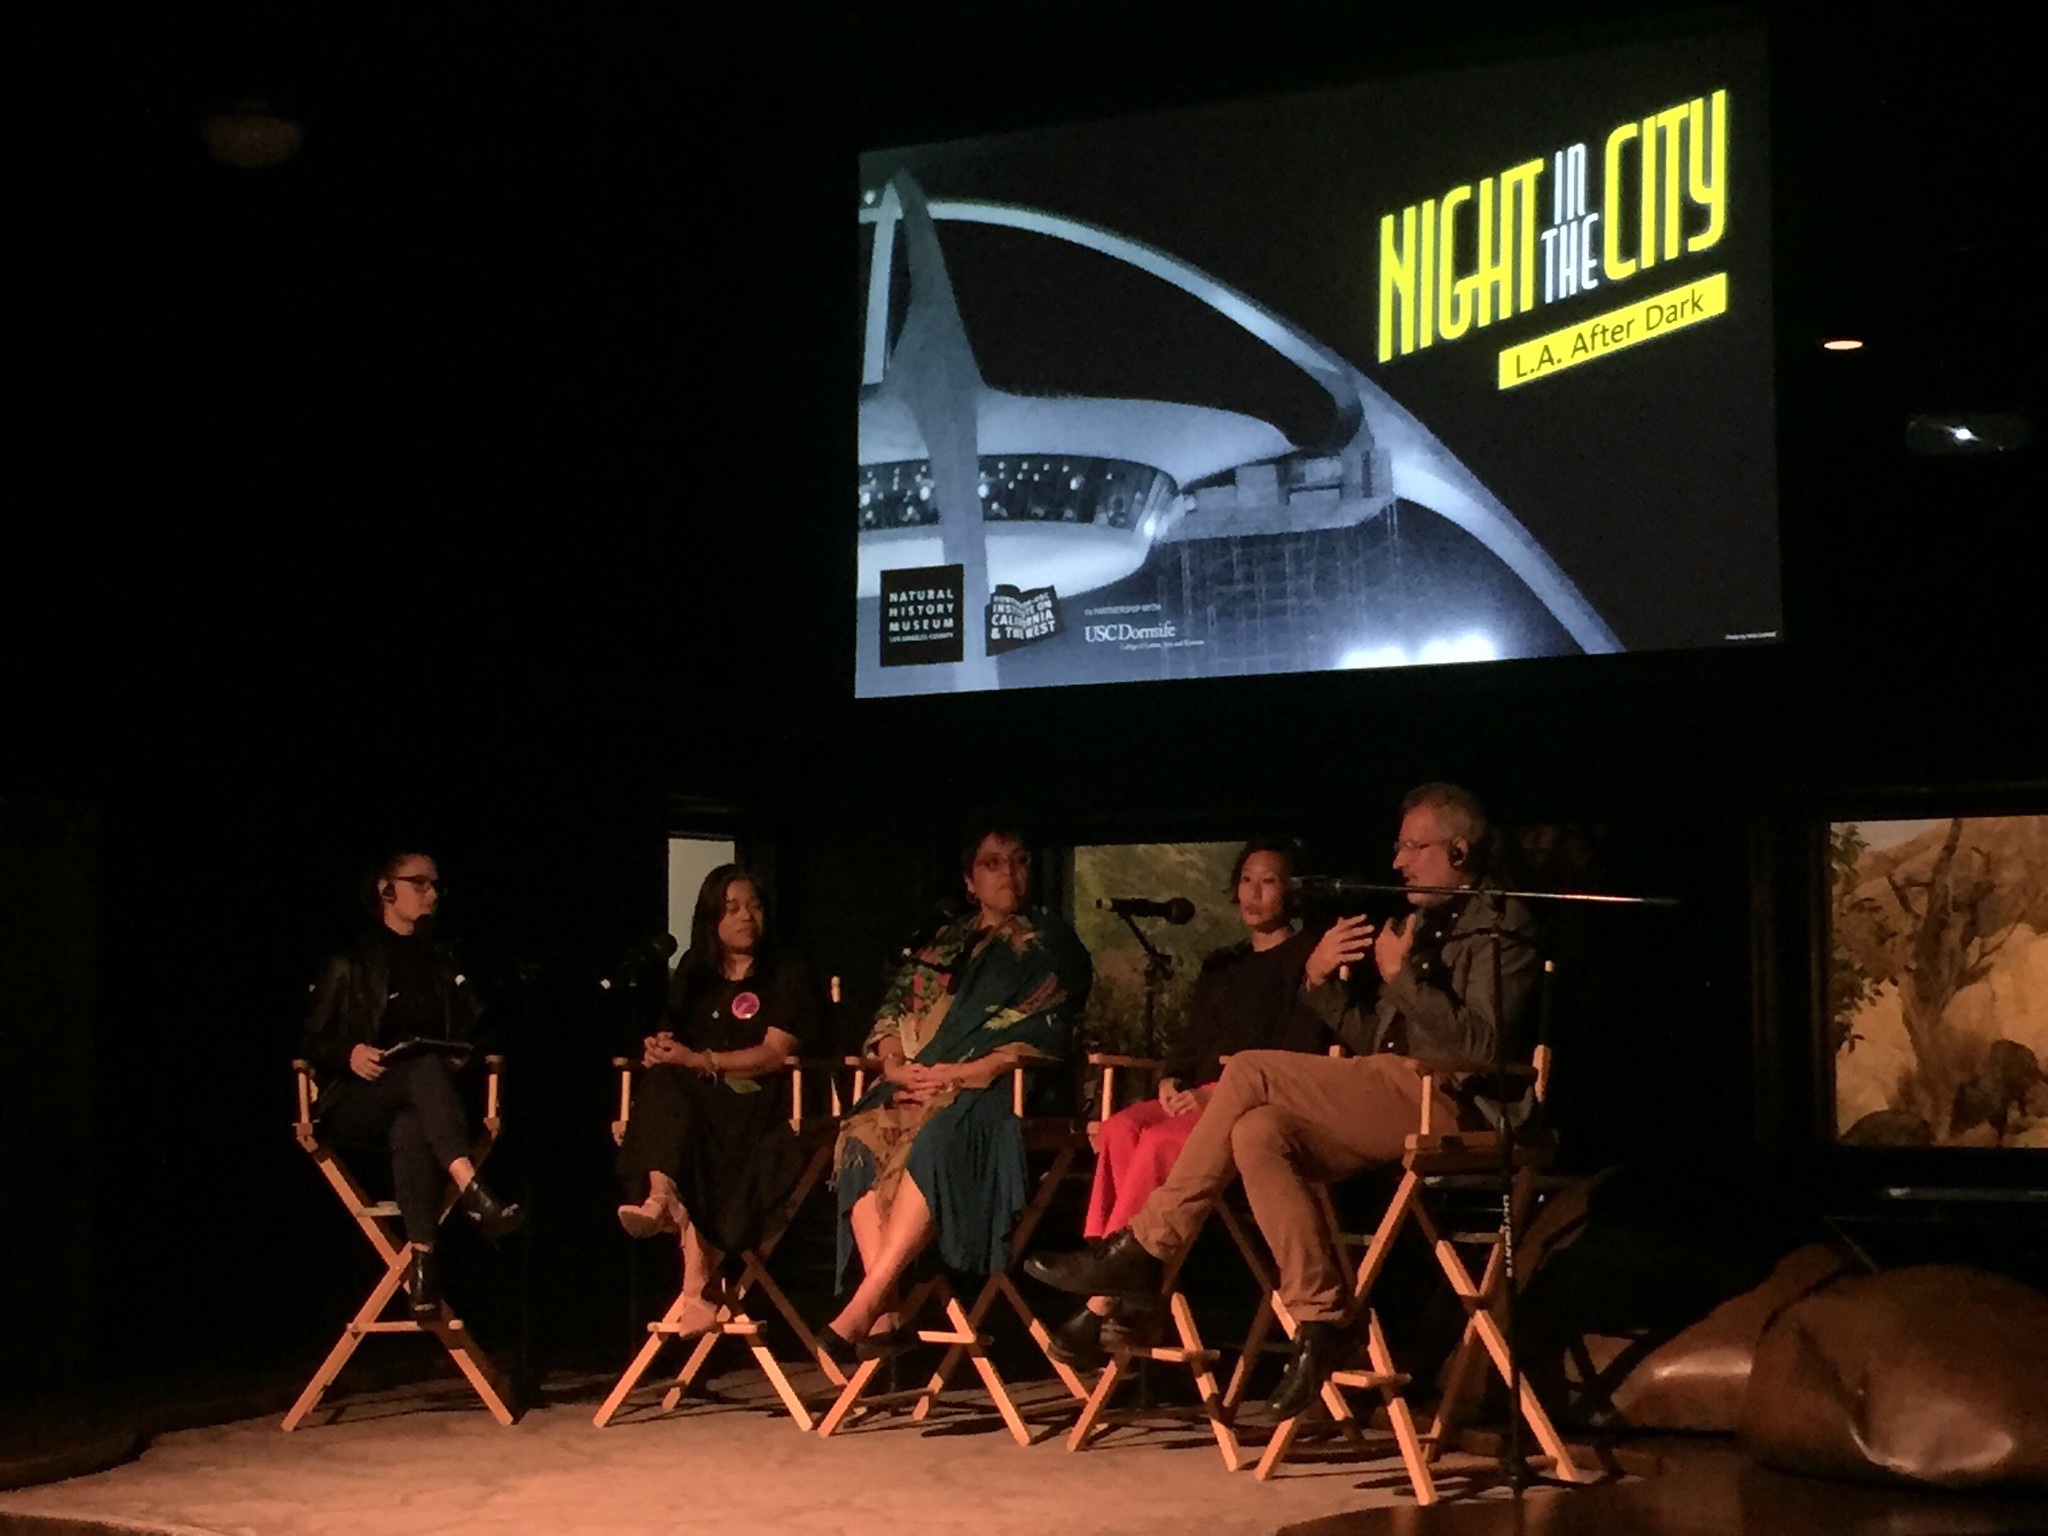 Reporter Cara Santa Maria, discussed the making of NIGHTSHIFT with film subjects Veronica Lagunas and Harriet Hayes, state labor commissioner Lillia Garcia-Brower and director David Grabias at the Natural History Museum on October 15, 2019.